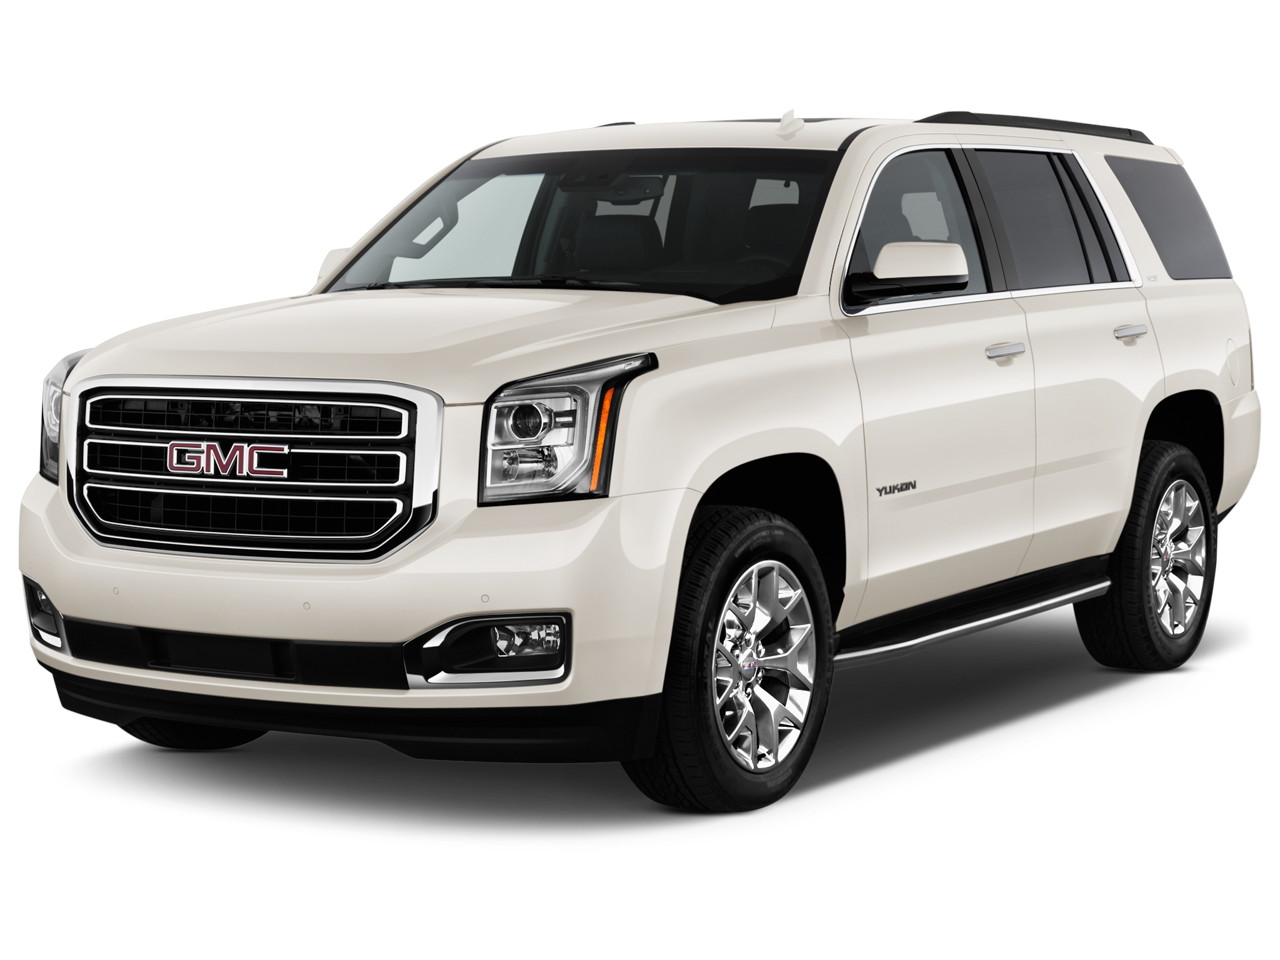 what colors do gmc offer the 2016 2500hd in 2016 autos post. Cars Review. Best American Auto & Cars Review